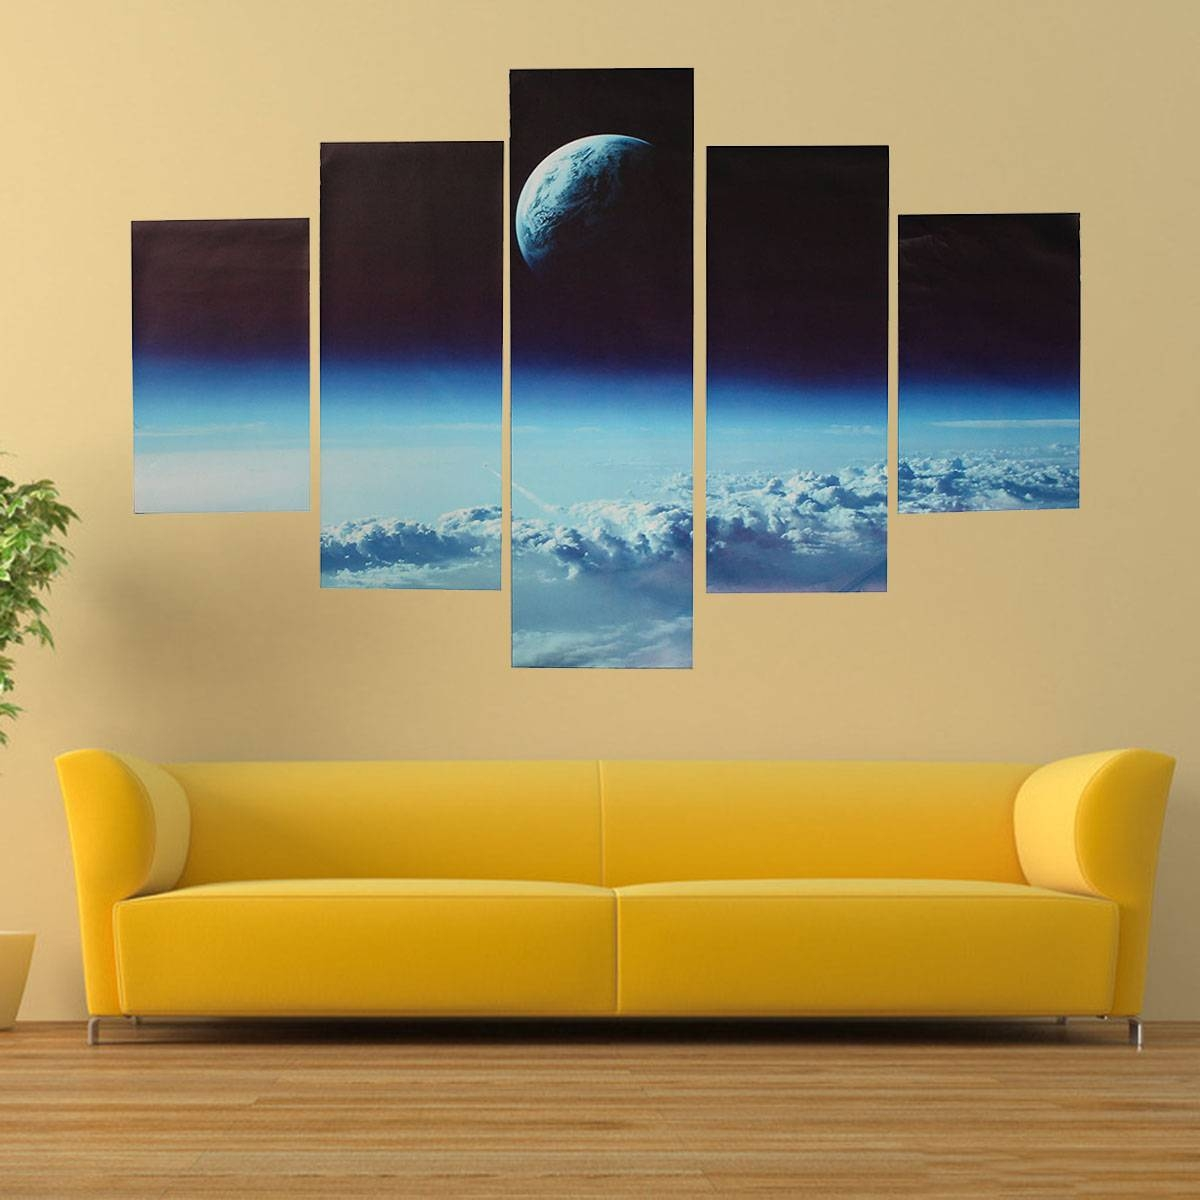 5Pcs Canvas Print Painting Cloud Veil Outer Space Modern Wall Art with regard to Most Up-to-Date Outer Space Wall Art